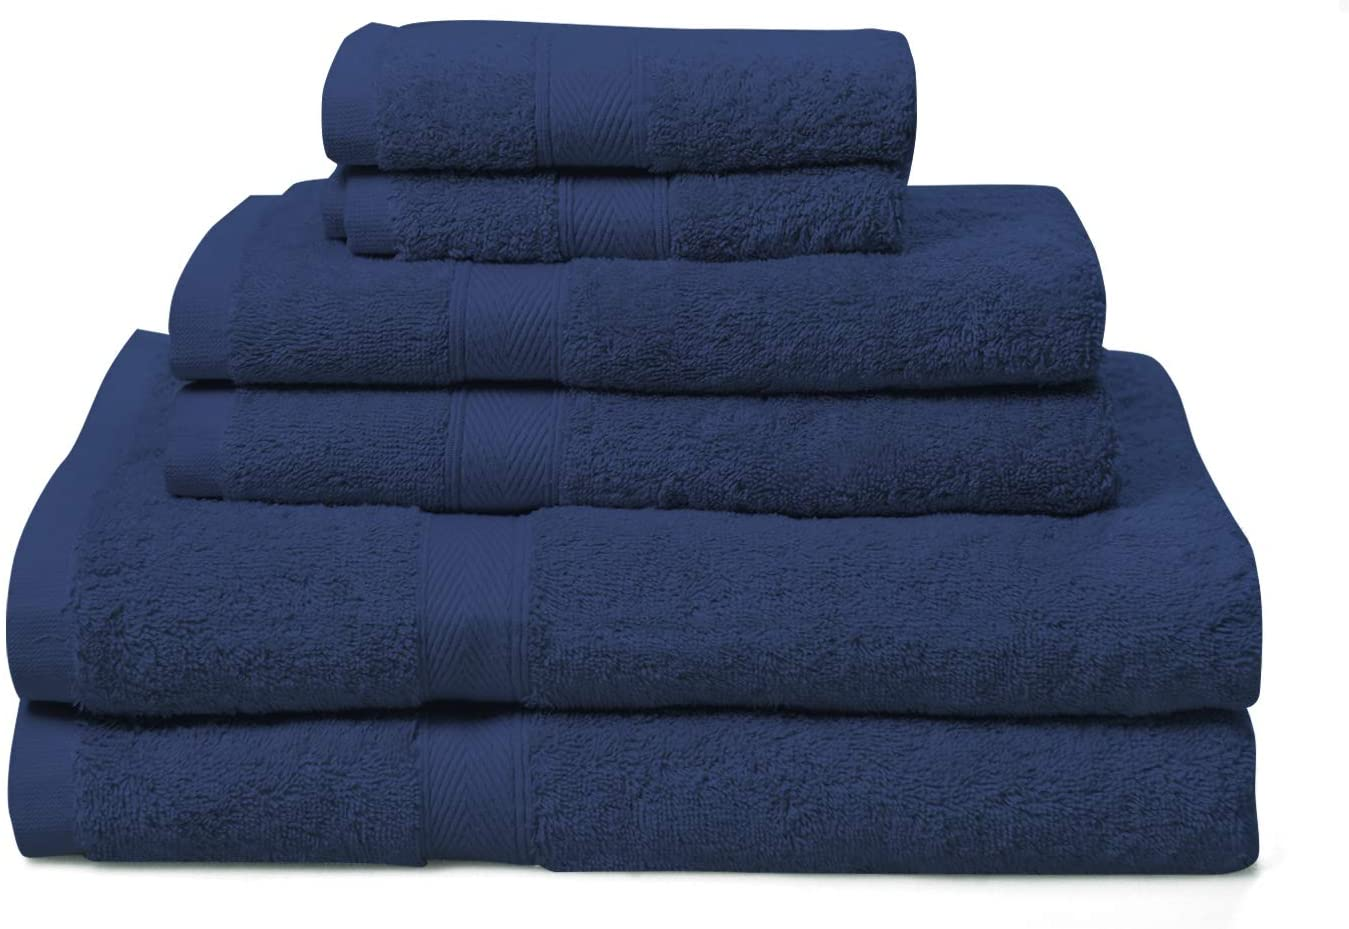 PHRIXUS 100% Ring-Spun Cotton Towel Sets, Hotel & Spa Quality, Highly Absorbent, Soft, Quick Dry, 600 GSM Luxury 6 Piece Set - 2 Bath Towels, 2 Hand Towels, 2 Washcloths for Bathroom, Shower, Blue